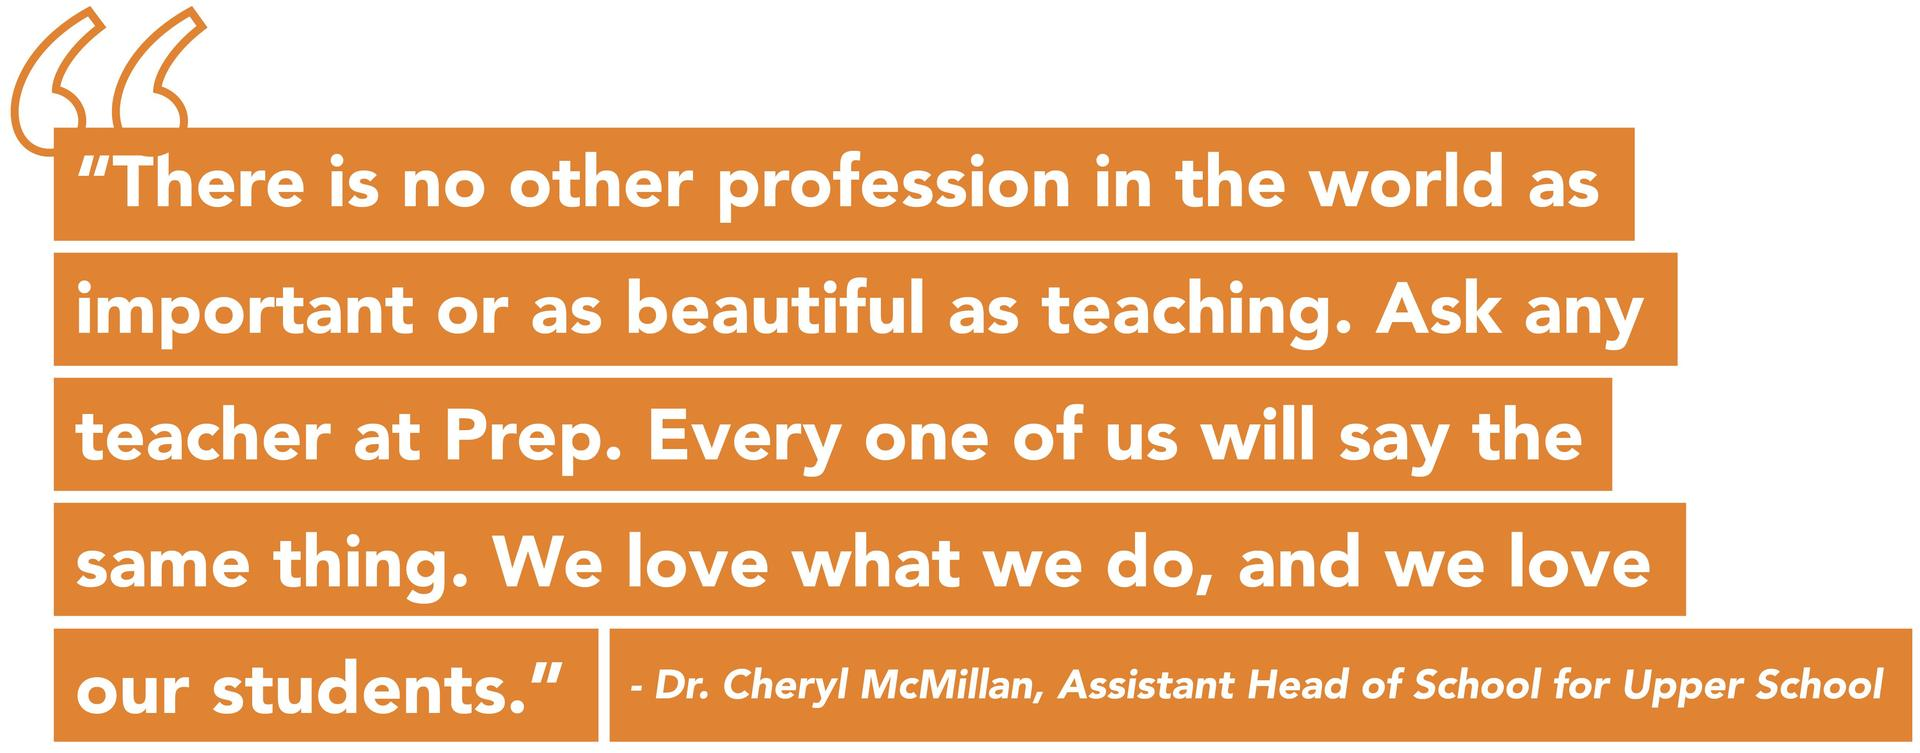 Quote from Dr. Cheryl McMillan